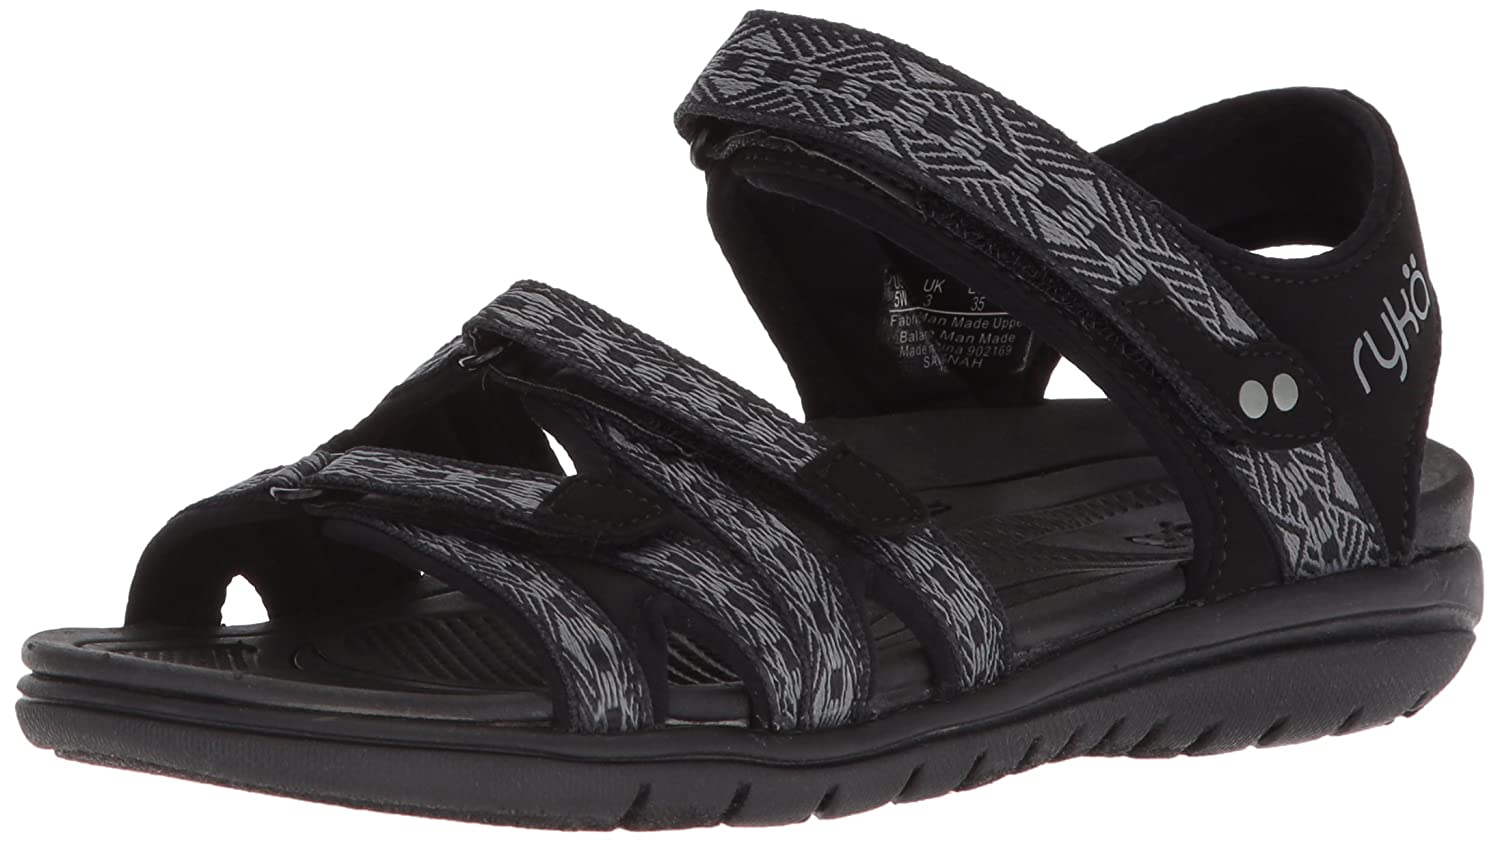 Ryka Women's Savannah Sandal B0757CZGZ6 6 W US|Black/Frost Grey